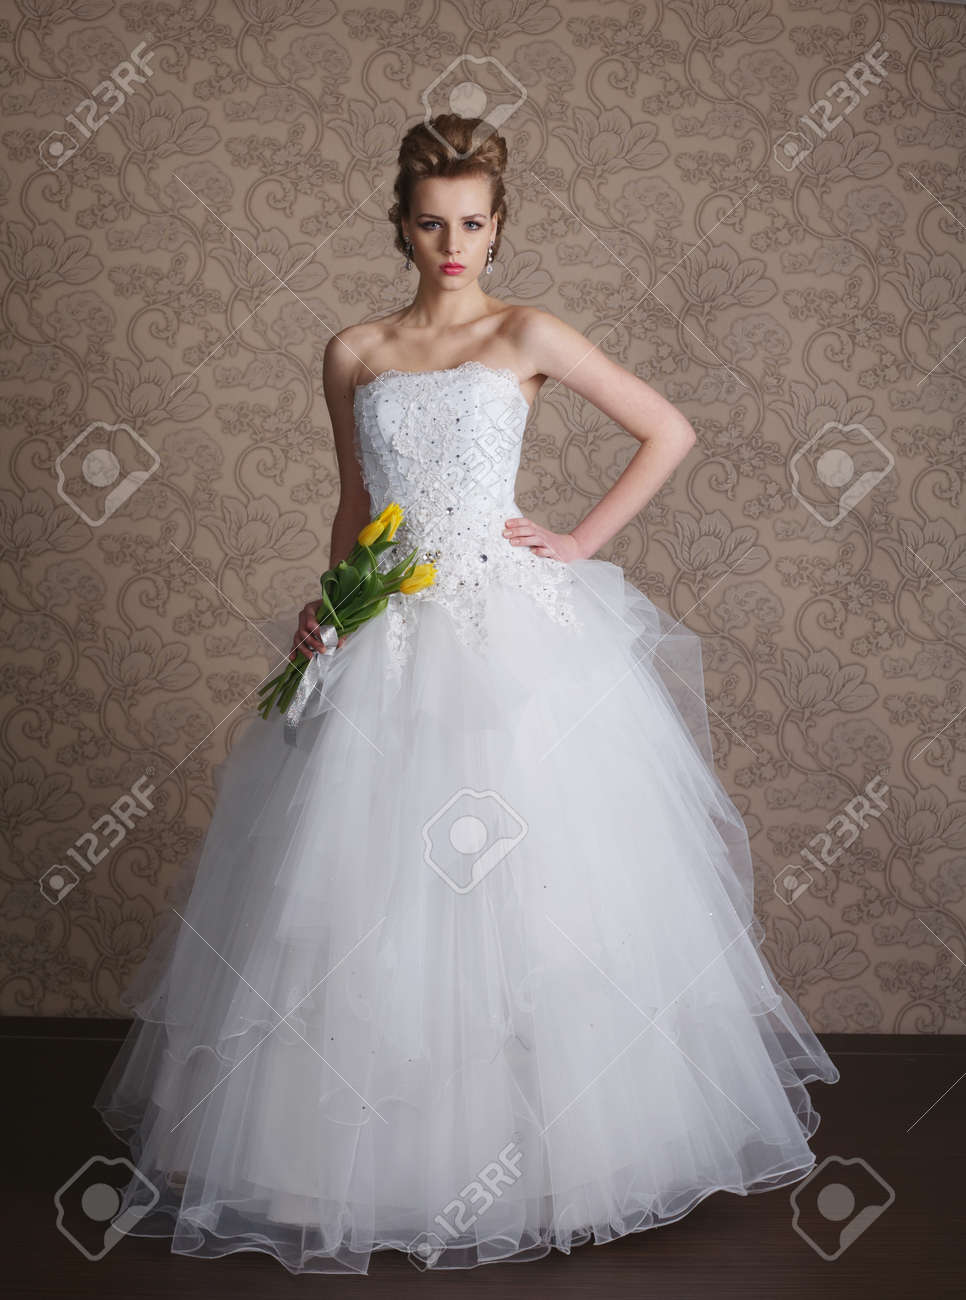 photo of young beautiful bride in wedding dress - 53728513